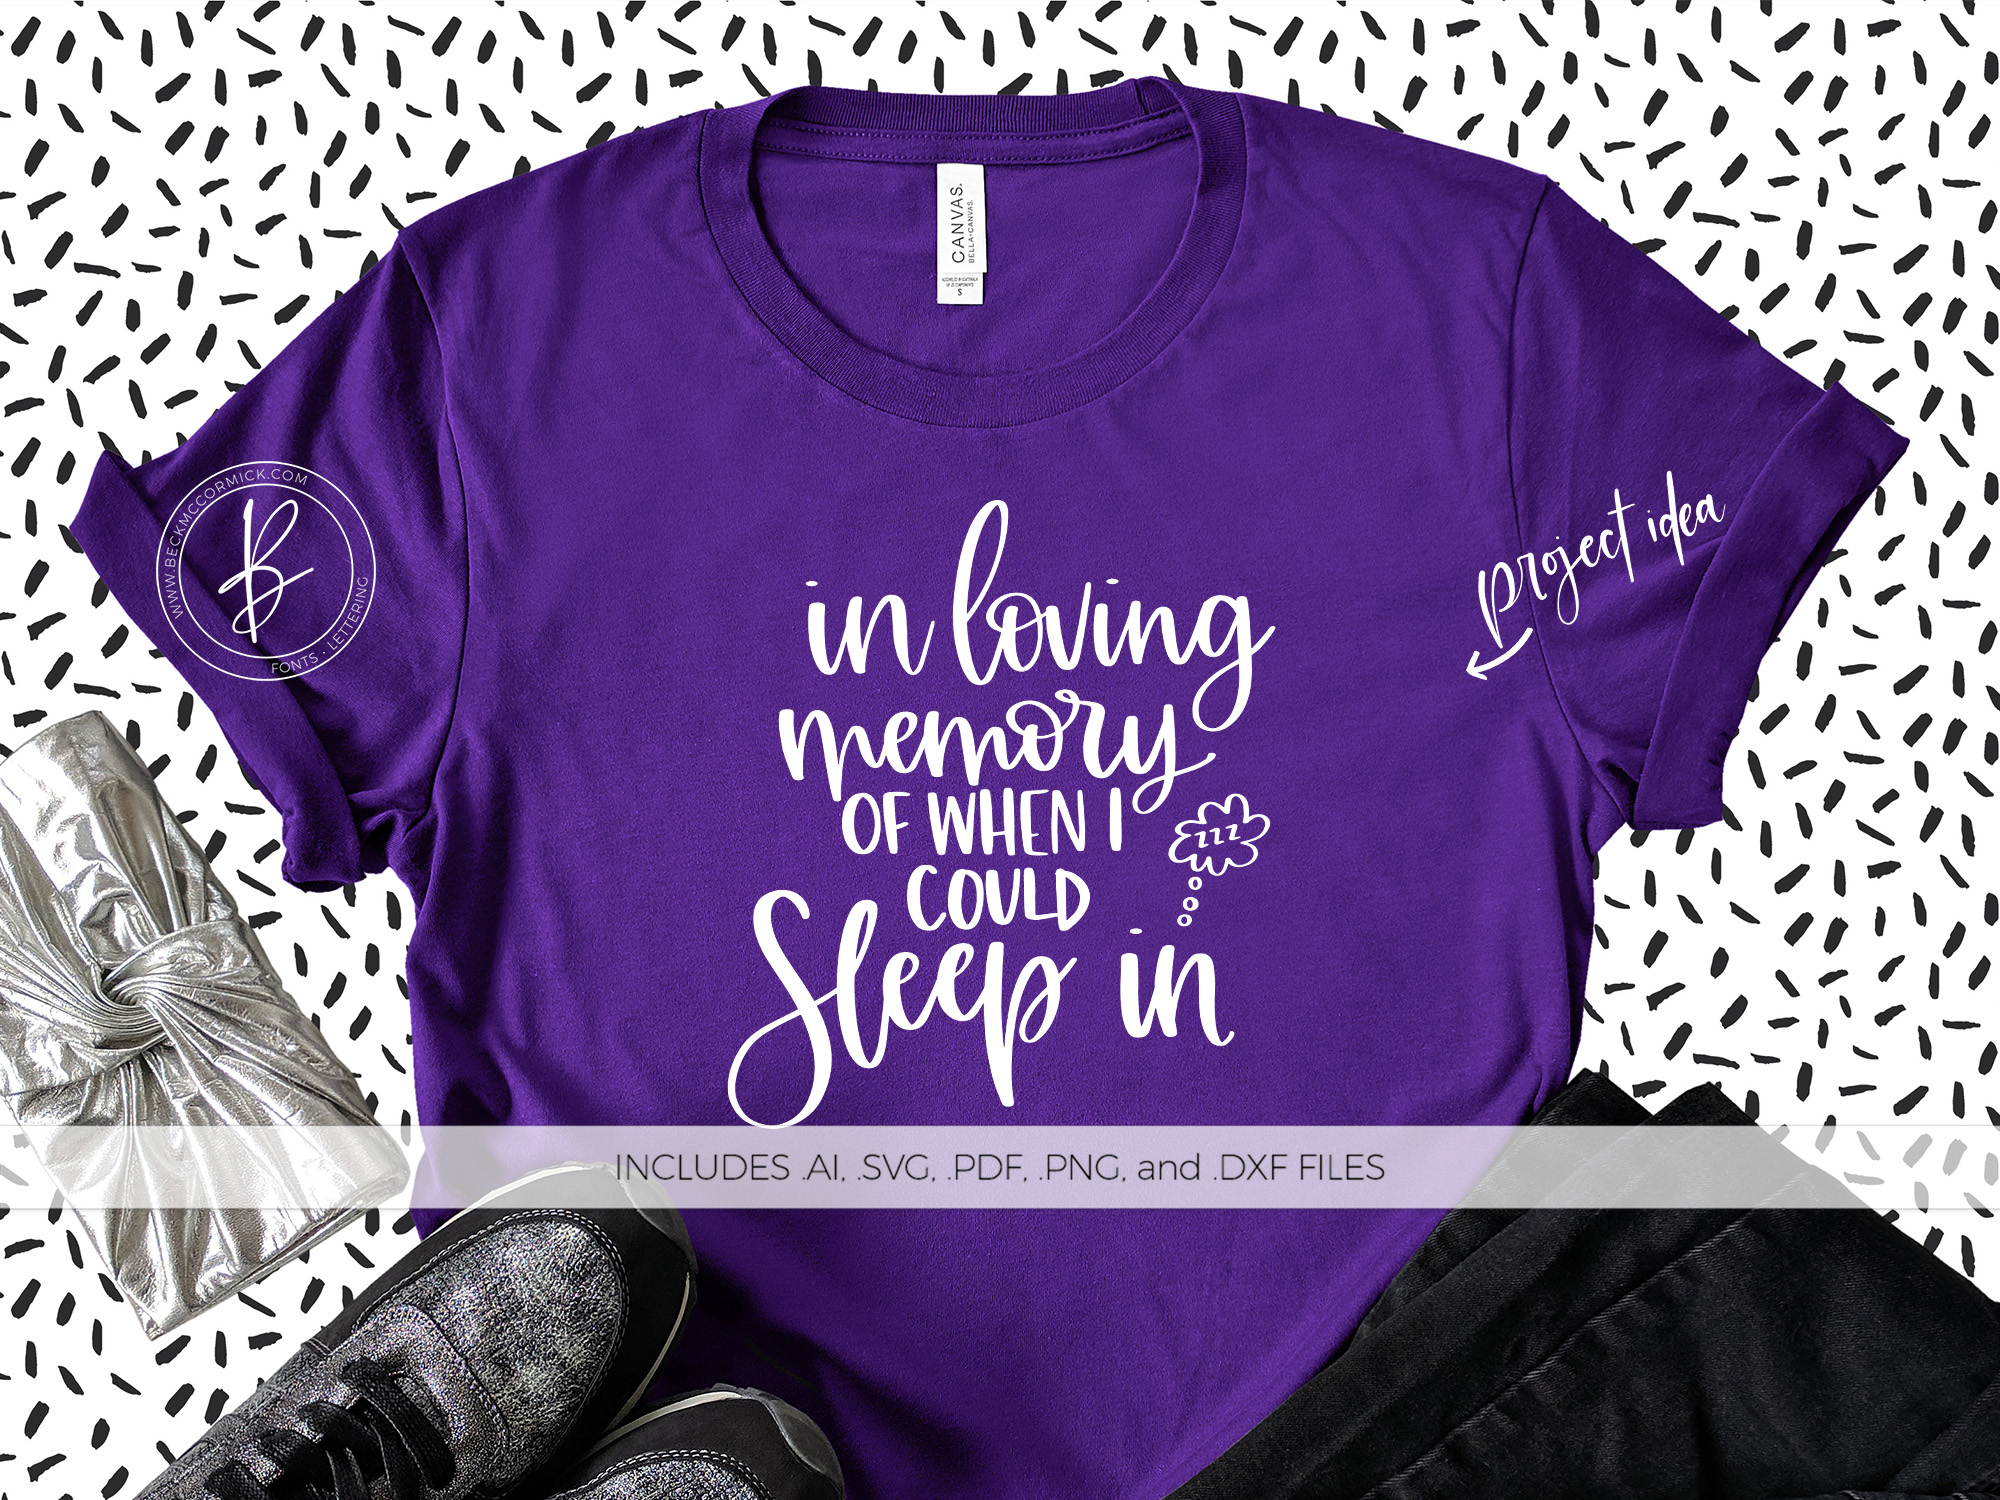 Download Free In Memory Of When I Could Sleep In Graphic By Beckmccormick for Cricut Explore, Silhouette and other cutting machines.